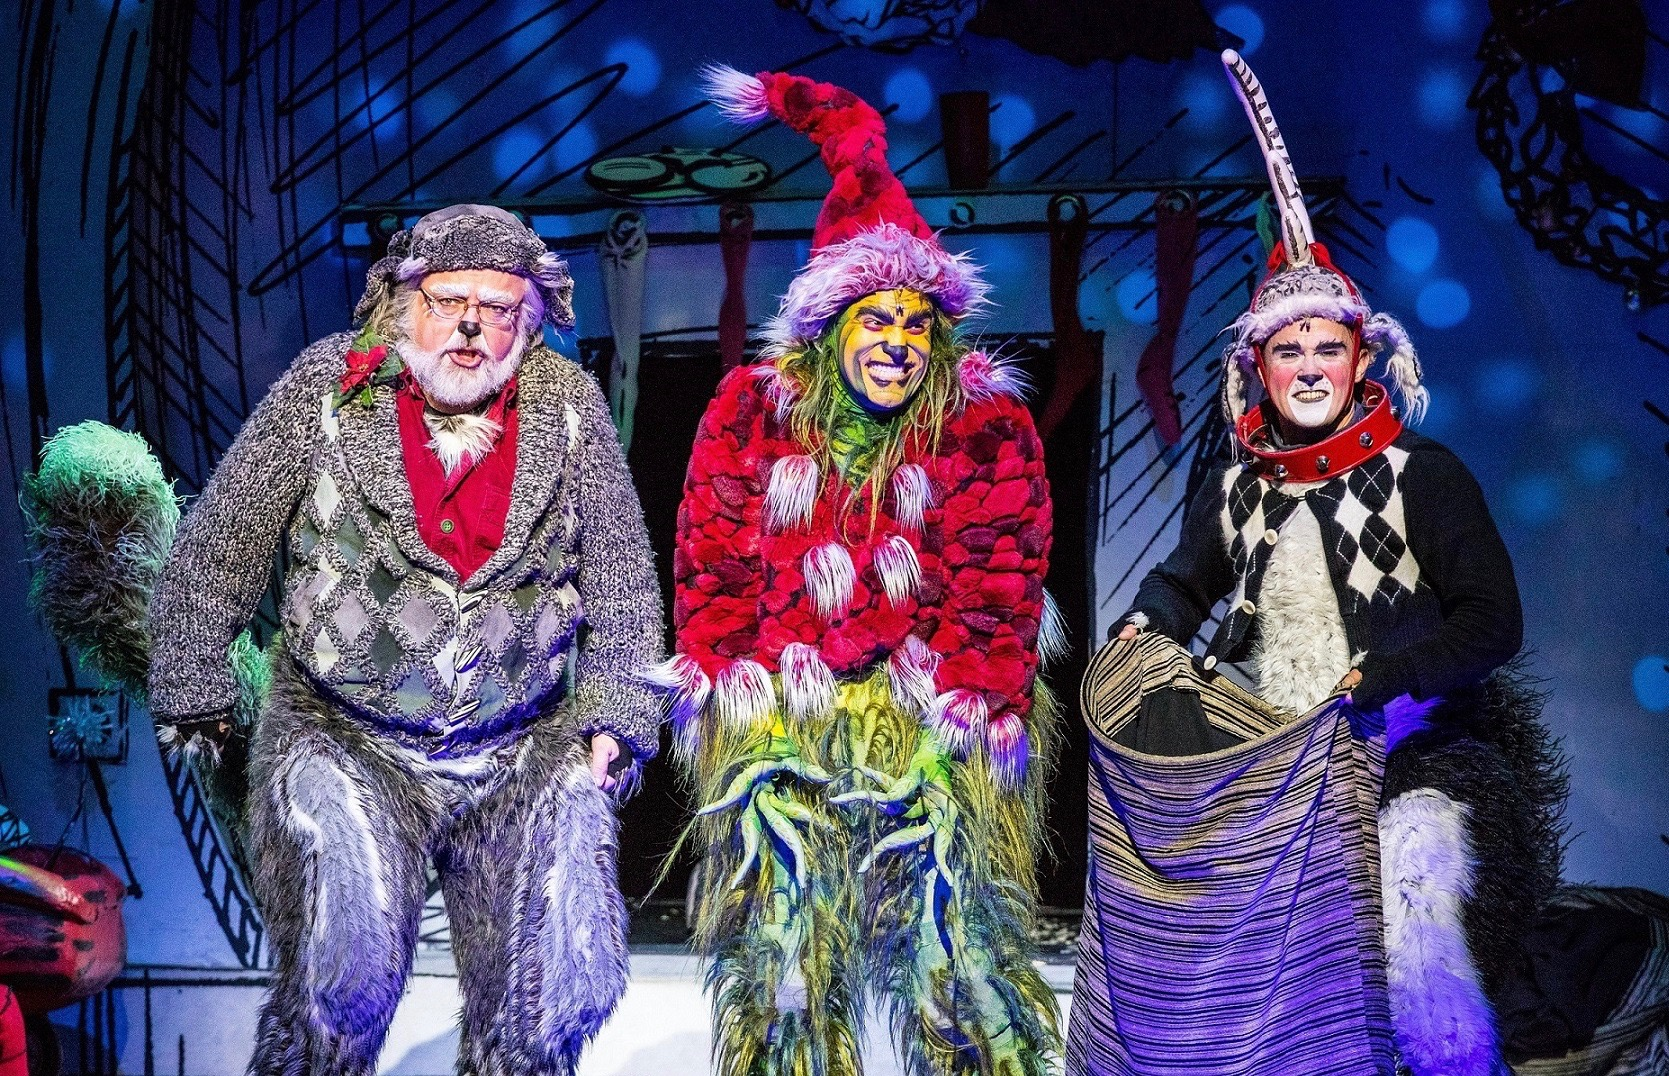 Fret not, for the live-theater options are numerous this month, and the touring production of 'Dr. Seuss' How The Grinch Stole Christmas! The Musical' is just one.